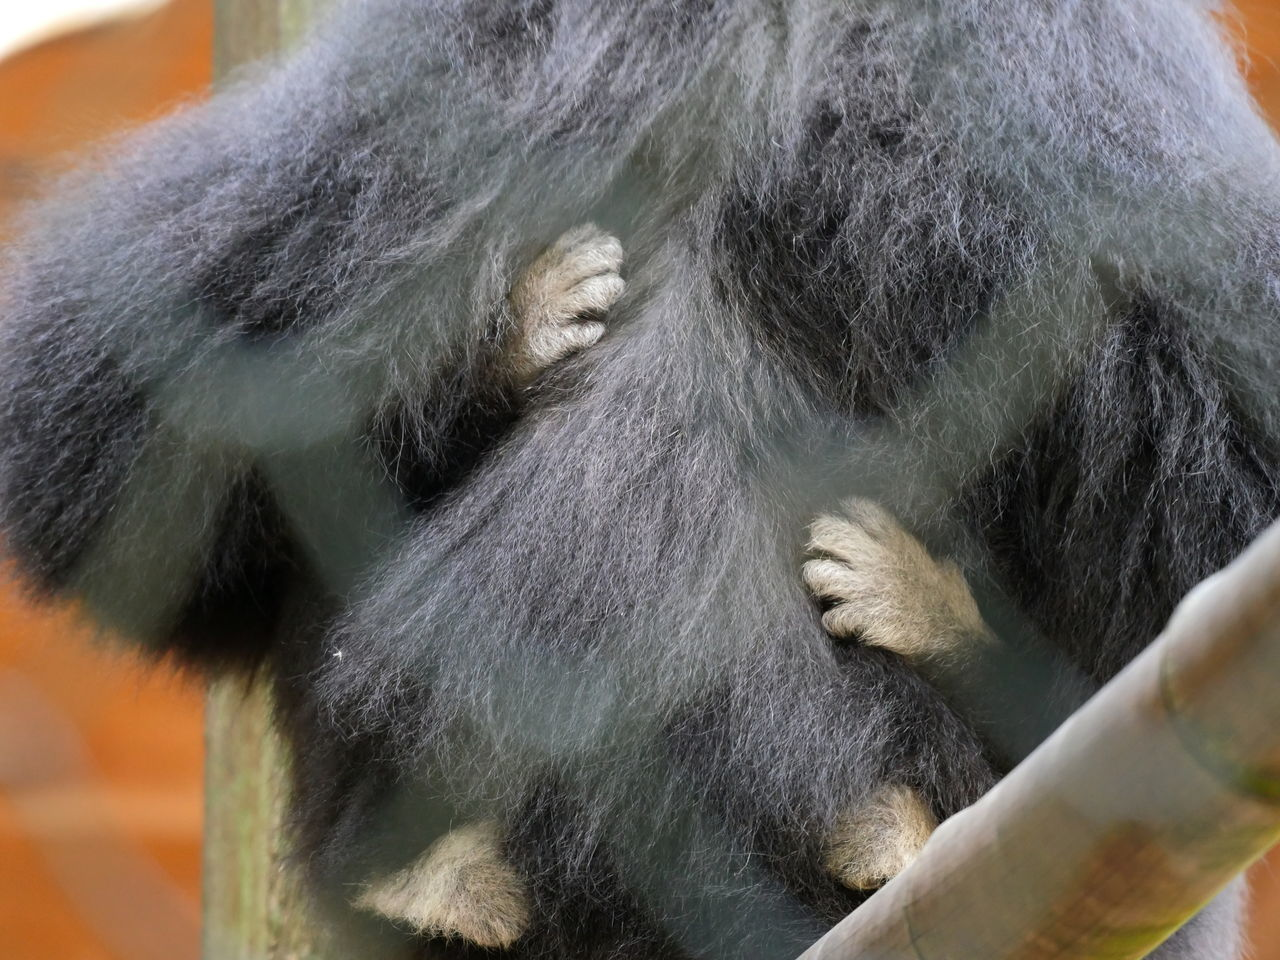 Animal Body Part Animal Hair Animals Hands Hold On Tight Monkey Neighborhood New Life No People Offspring Outdoors Thinks I Like Young Animal Zoology From My Point Of View Taking Photos Animal Themes Monkeys Security